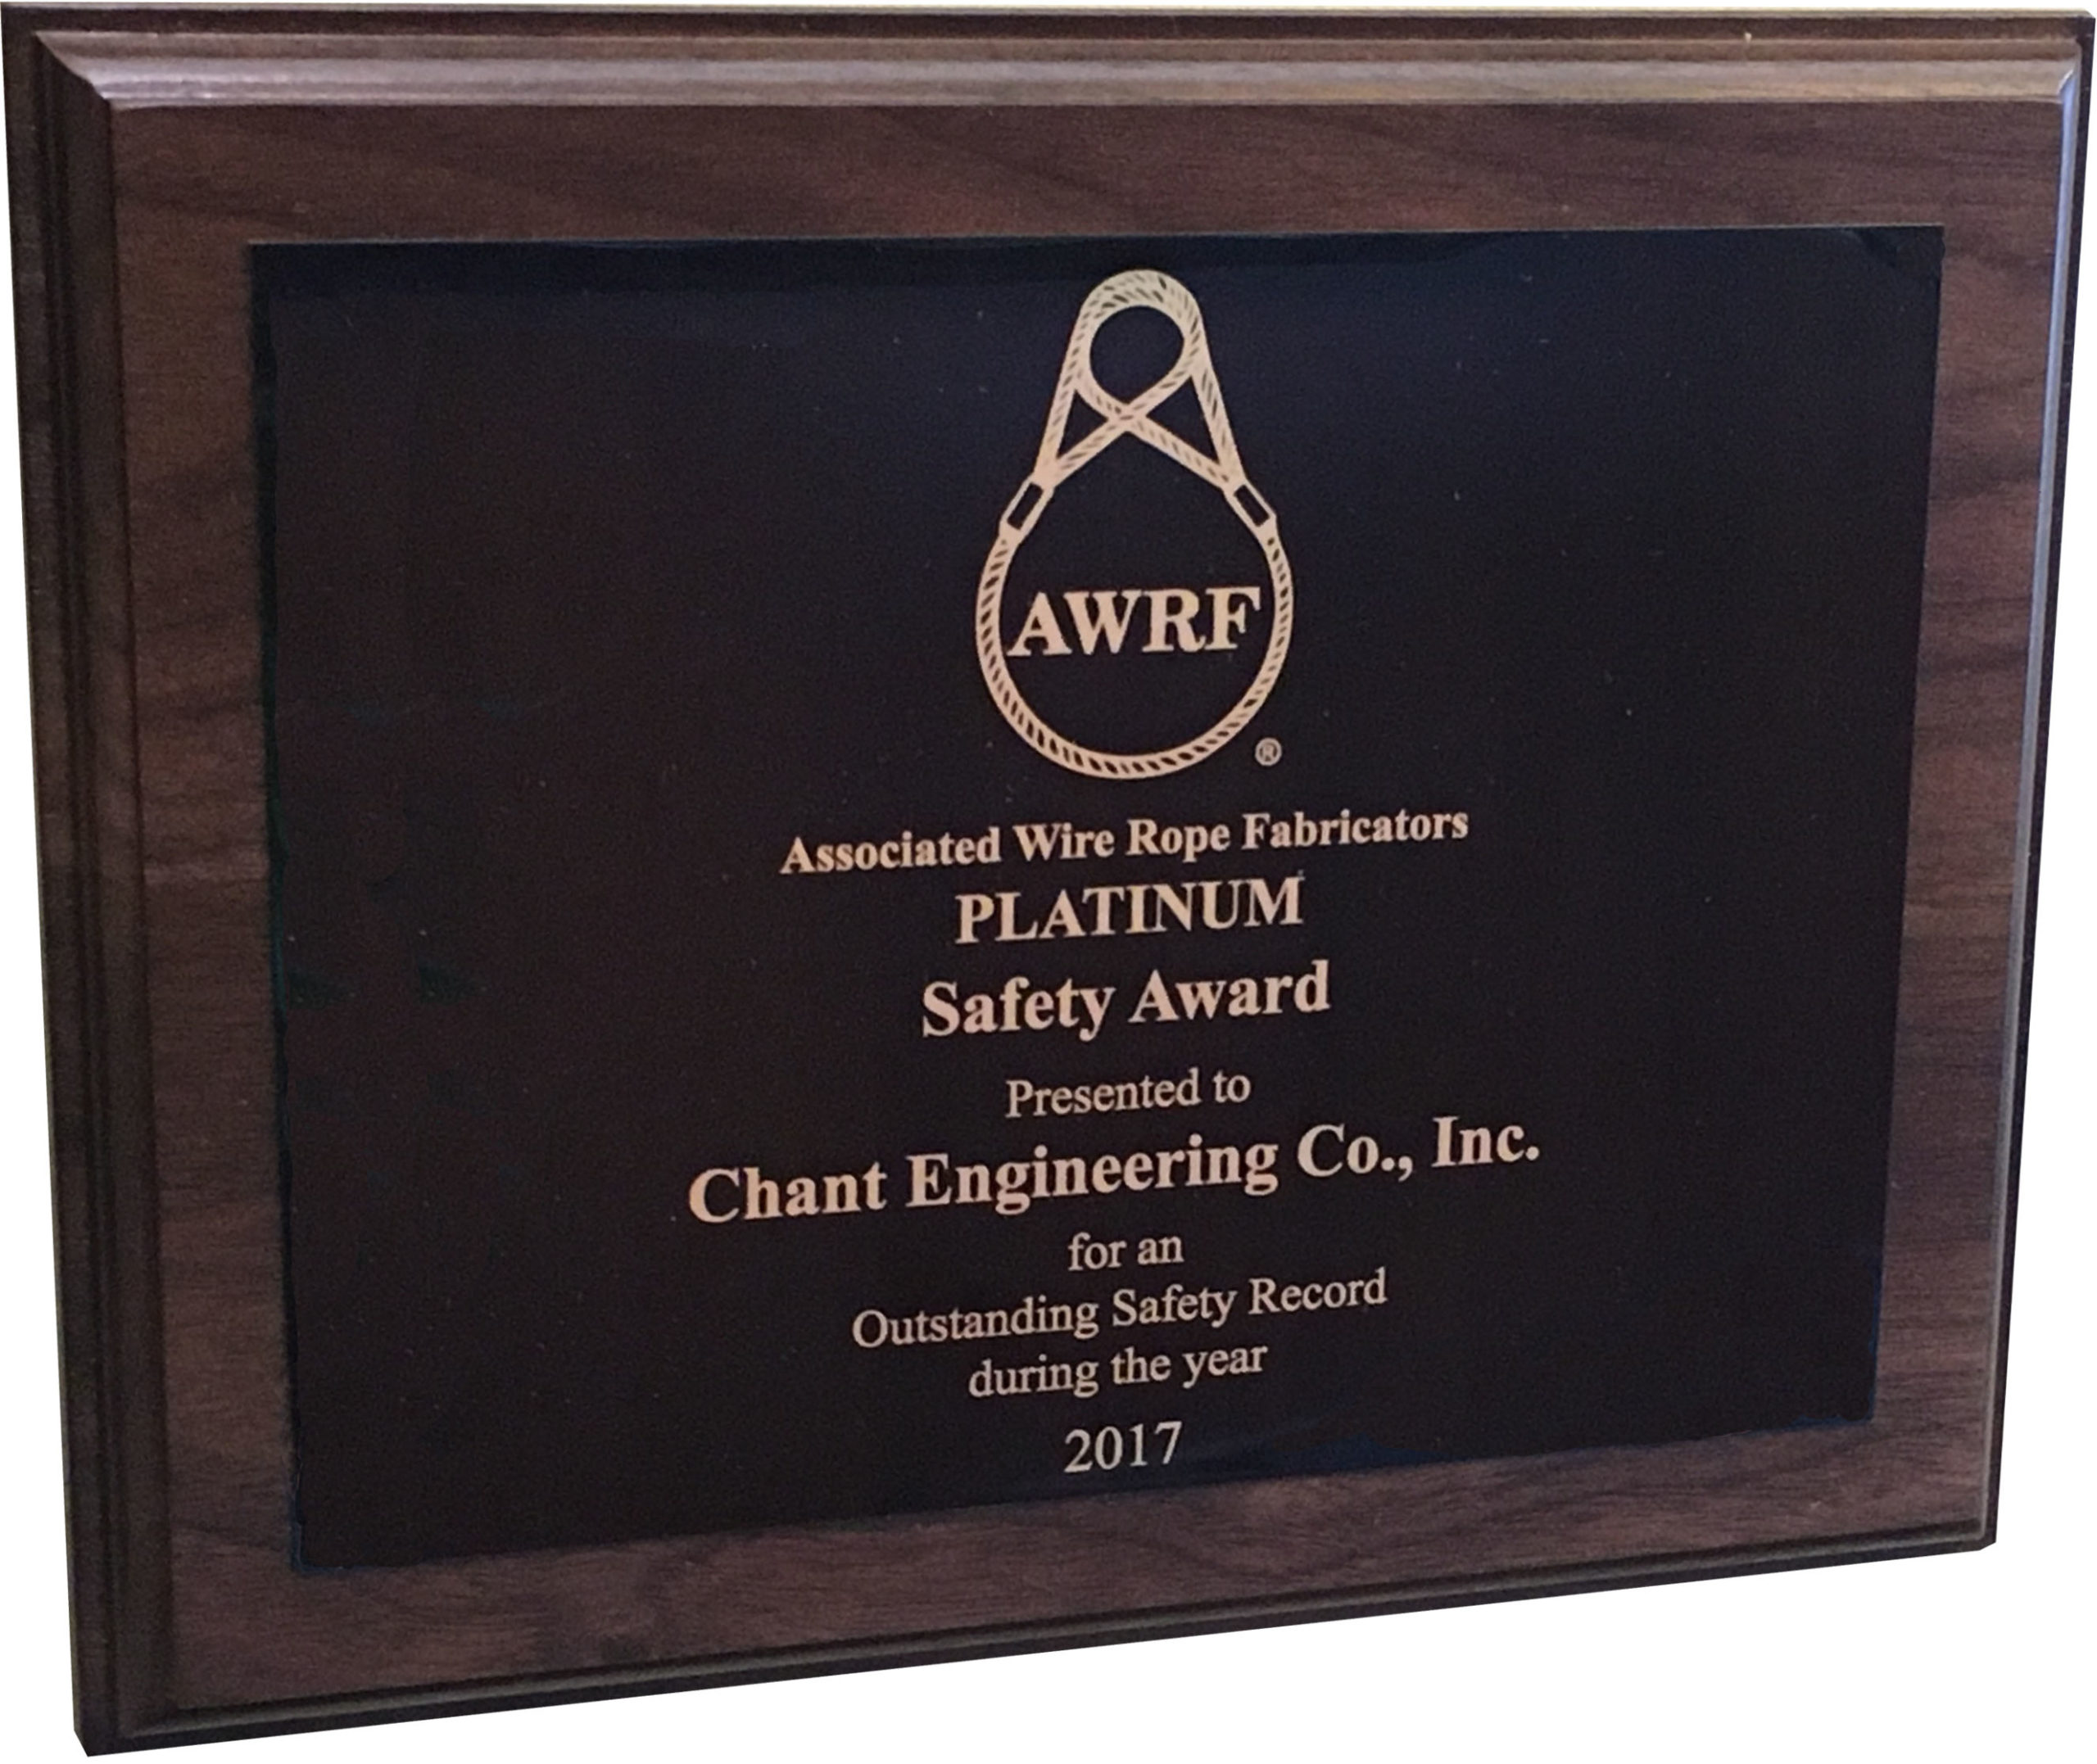 Chant has become a twelve time recipient for AWRF's Platinum Safety Award